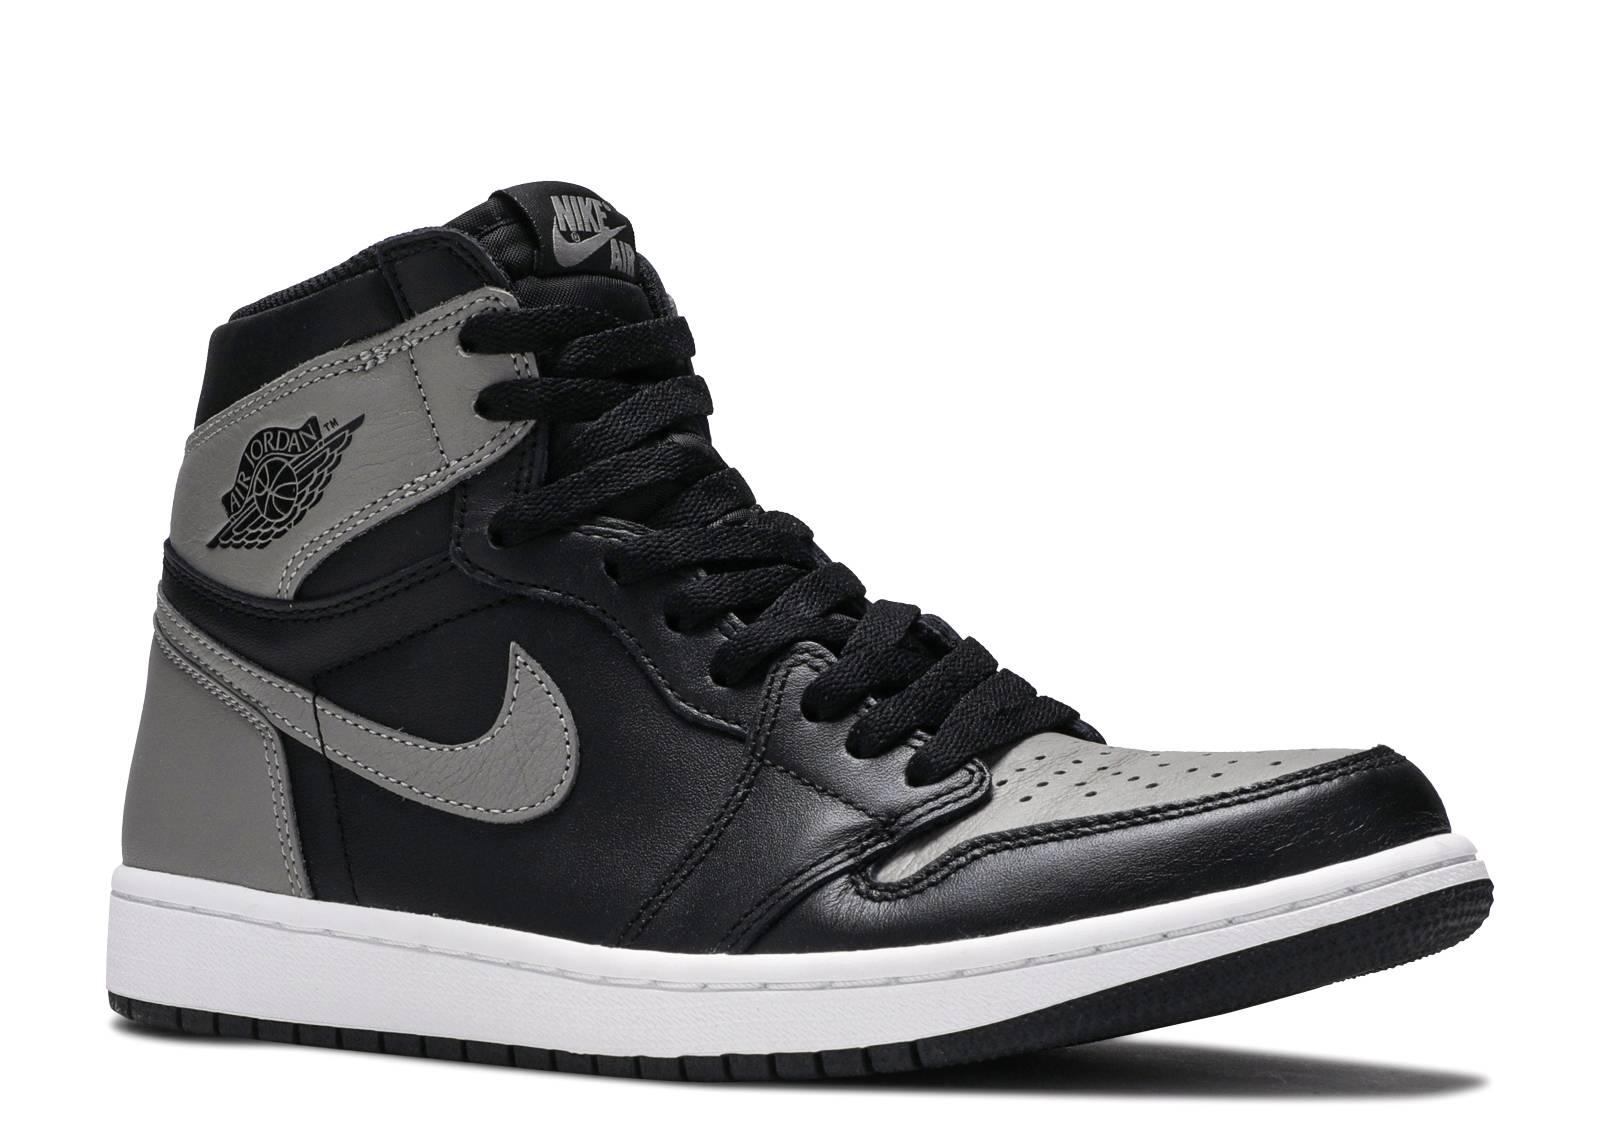 web Criticar boca  Air Jordan 1 Retro High OG 'Shadow' 2018 - Air Jordan - 555088 013 -  black/white-medium grey | Flight Club